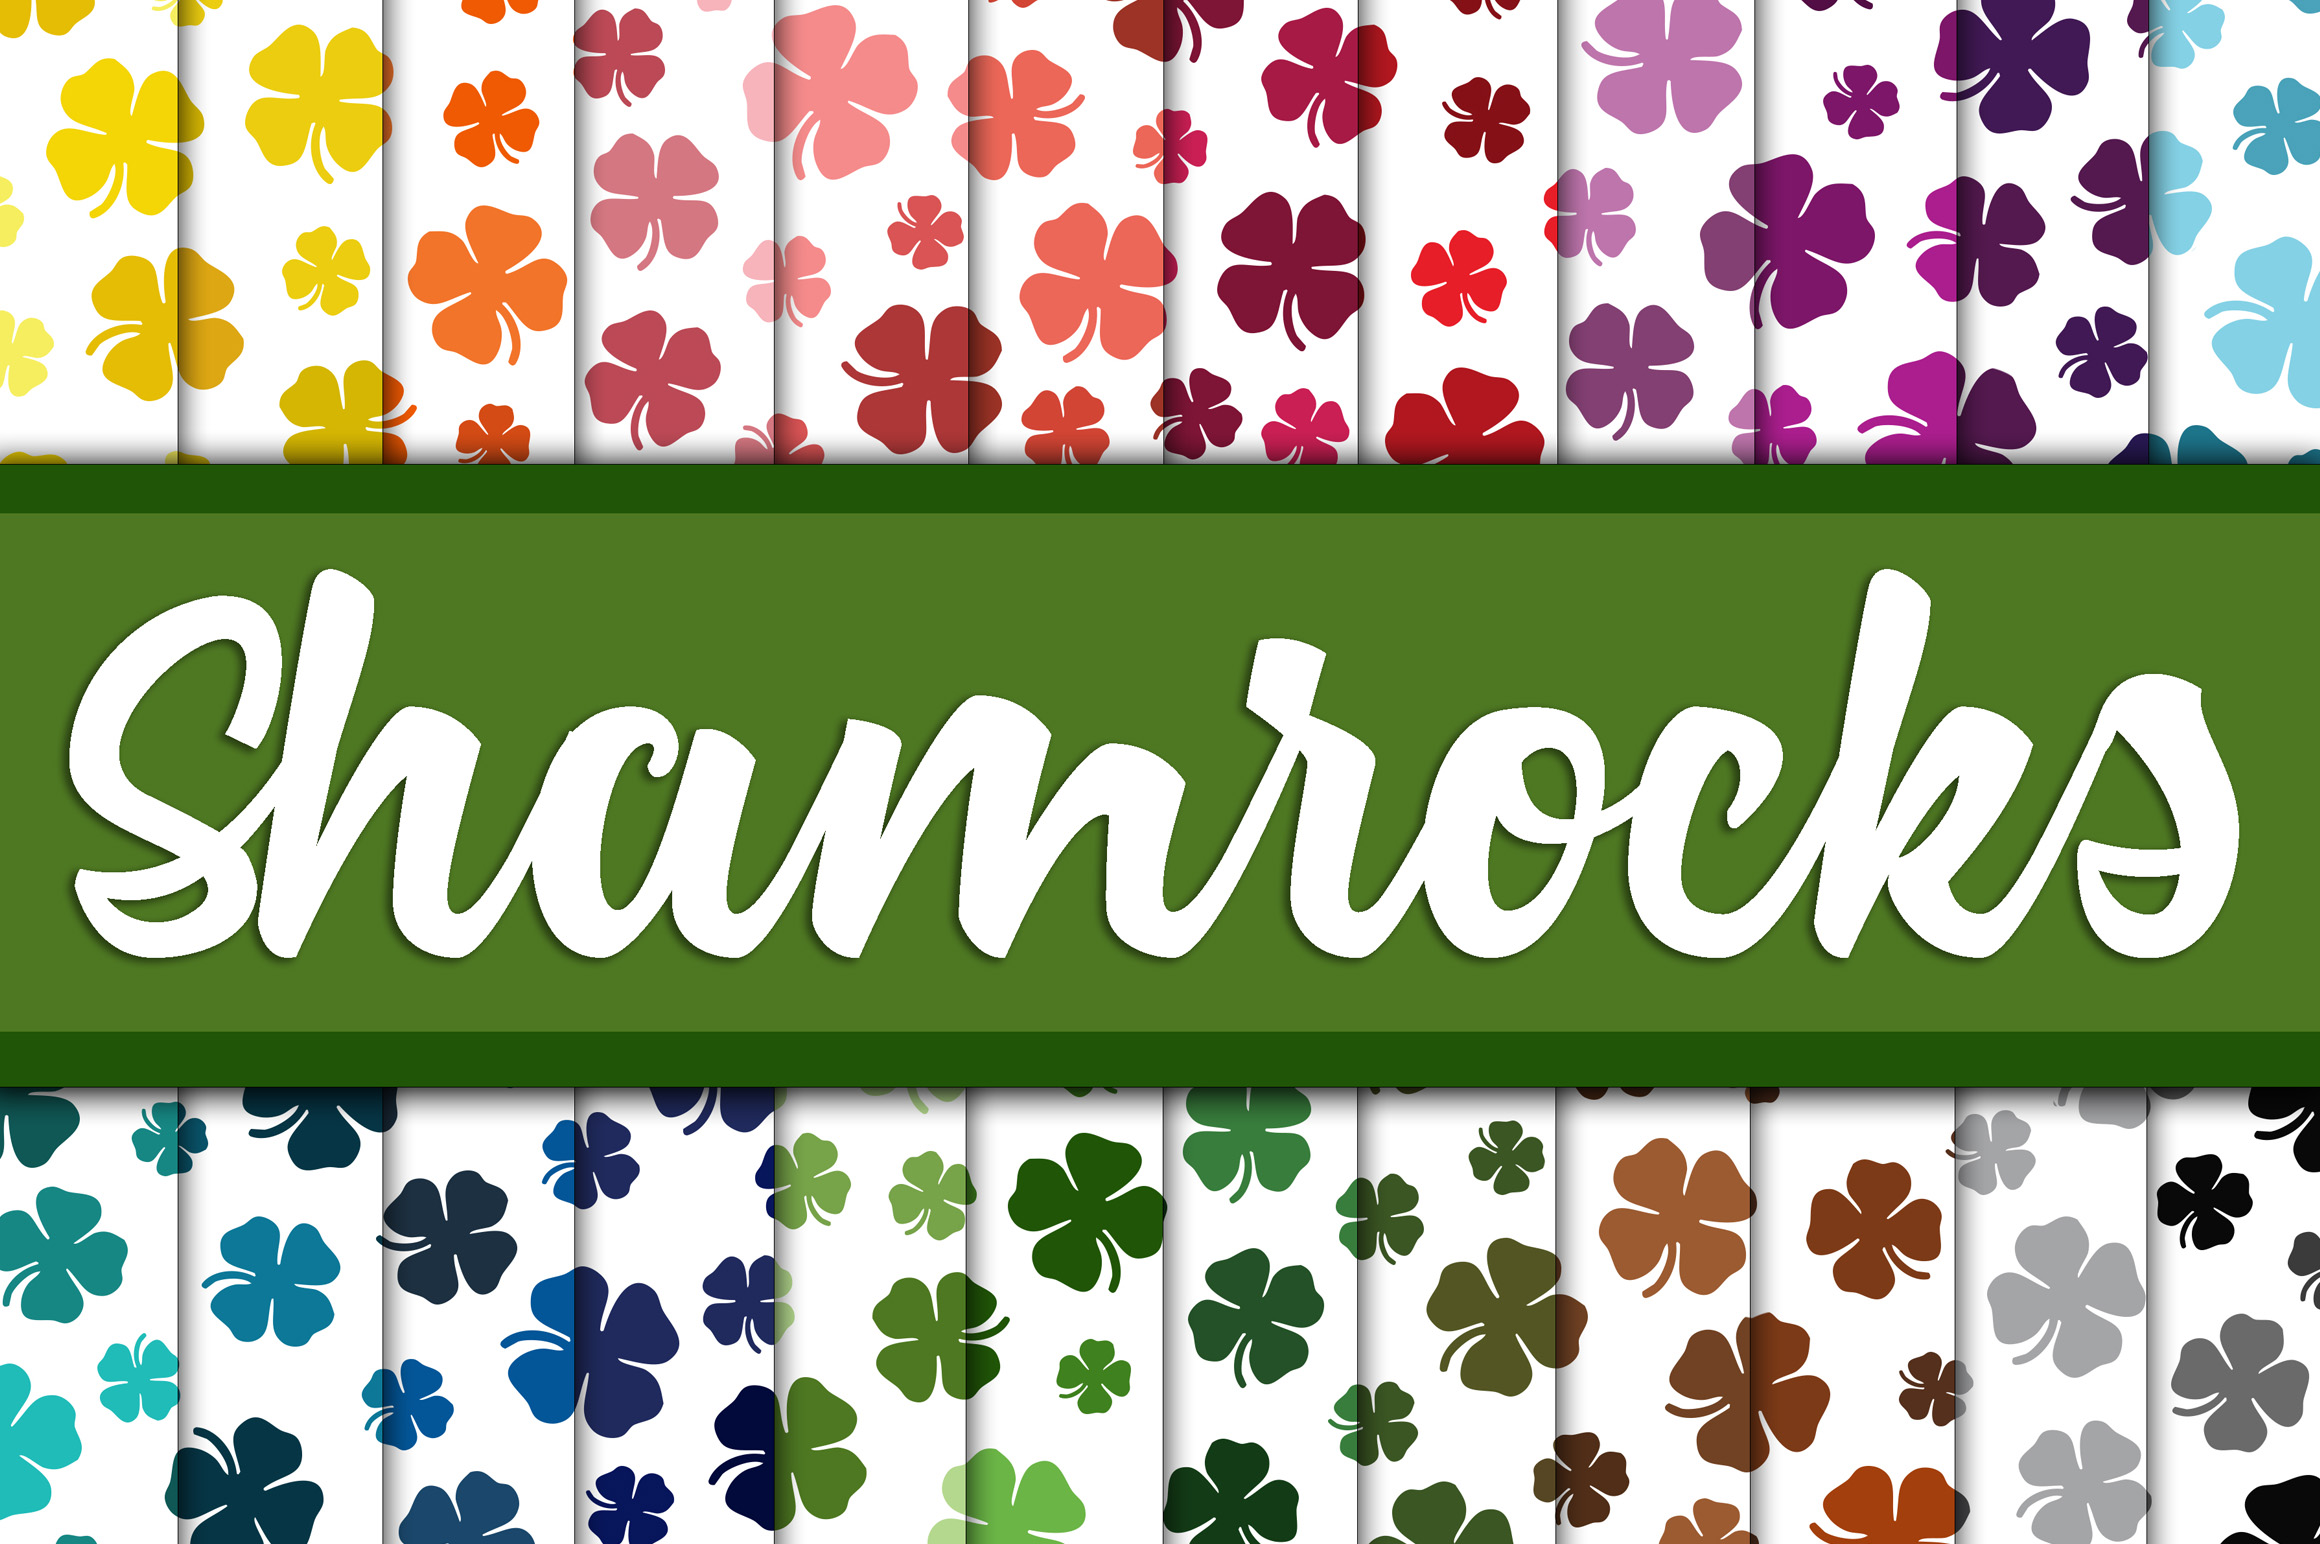 Shamrock Digital Paper - St Patrick's Day Backgrounds example image 1